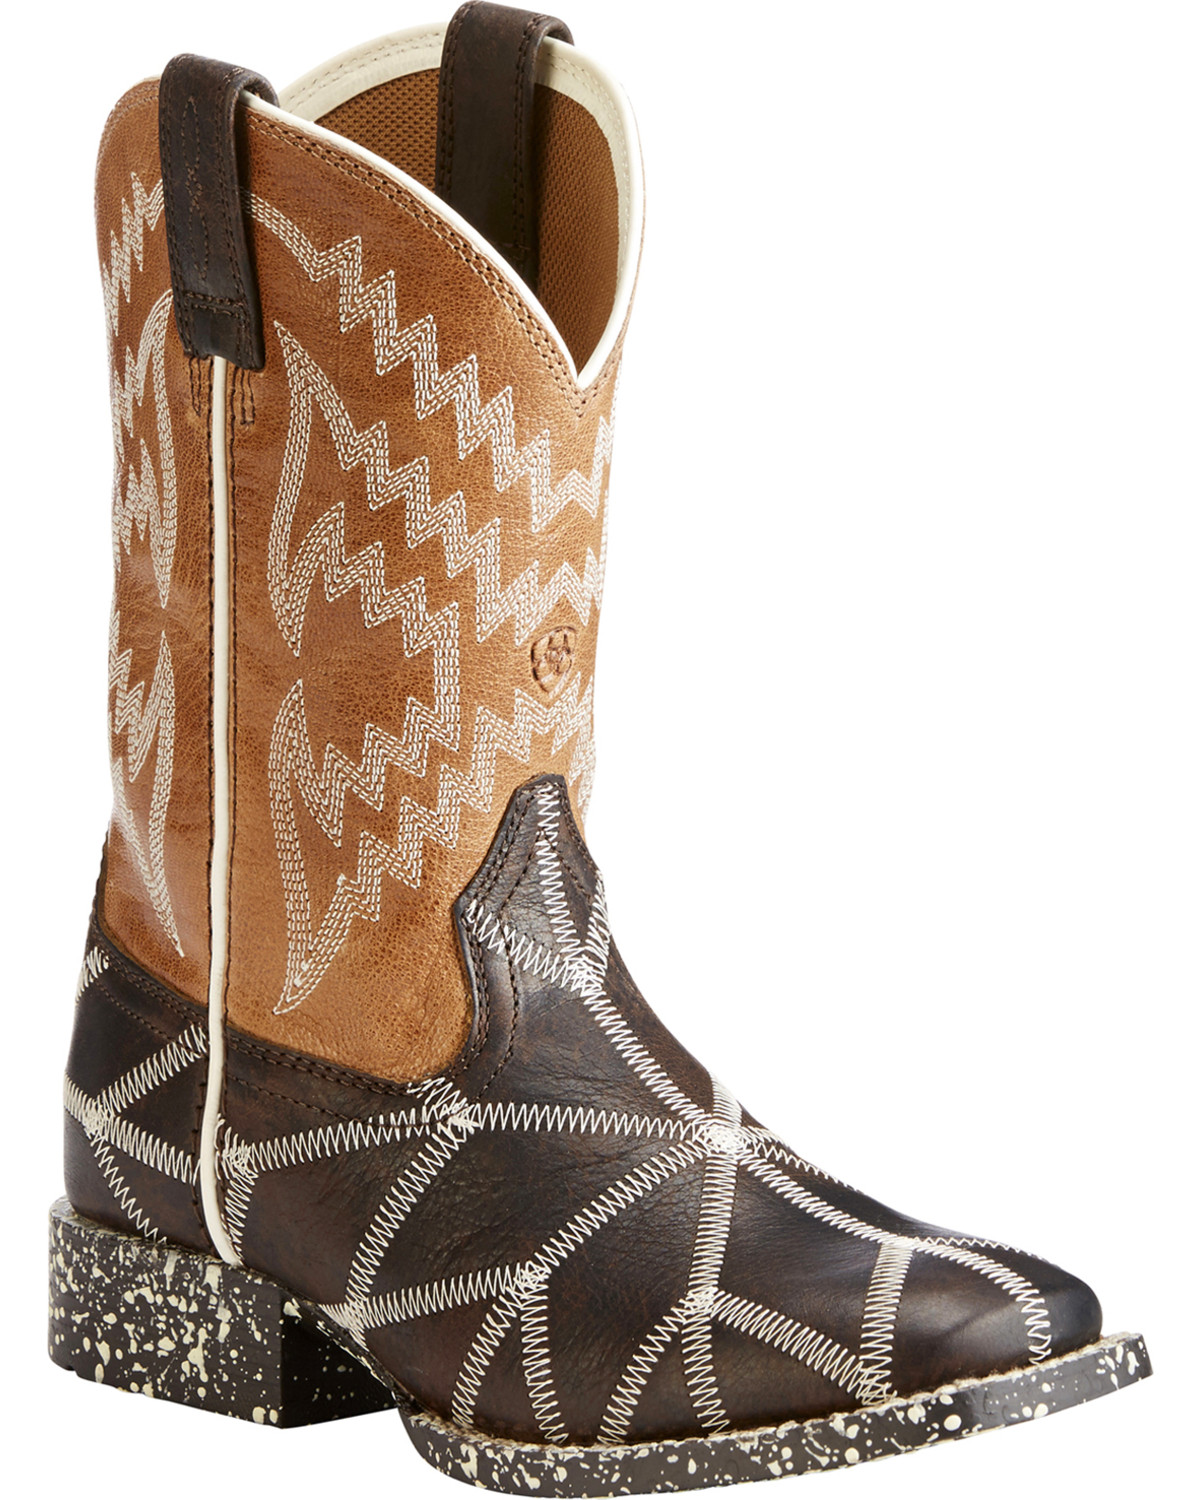 ee38d0e5d99 Ariat Boys' Brown Phantom Tycoon Western Boots - Square Toe